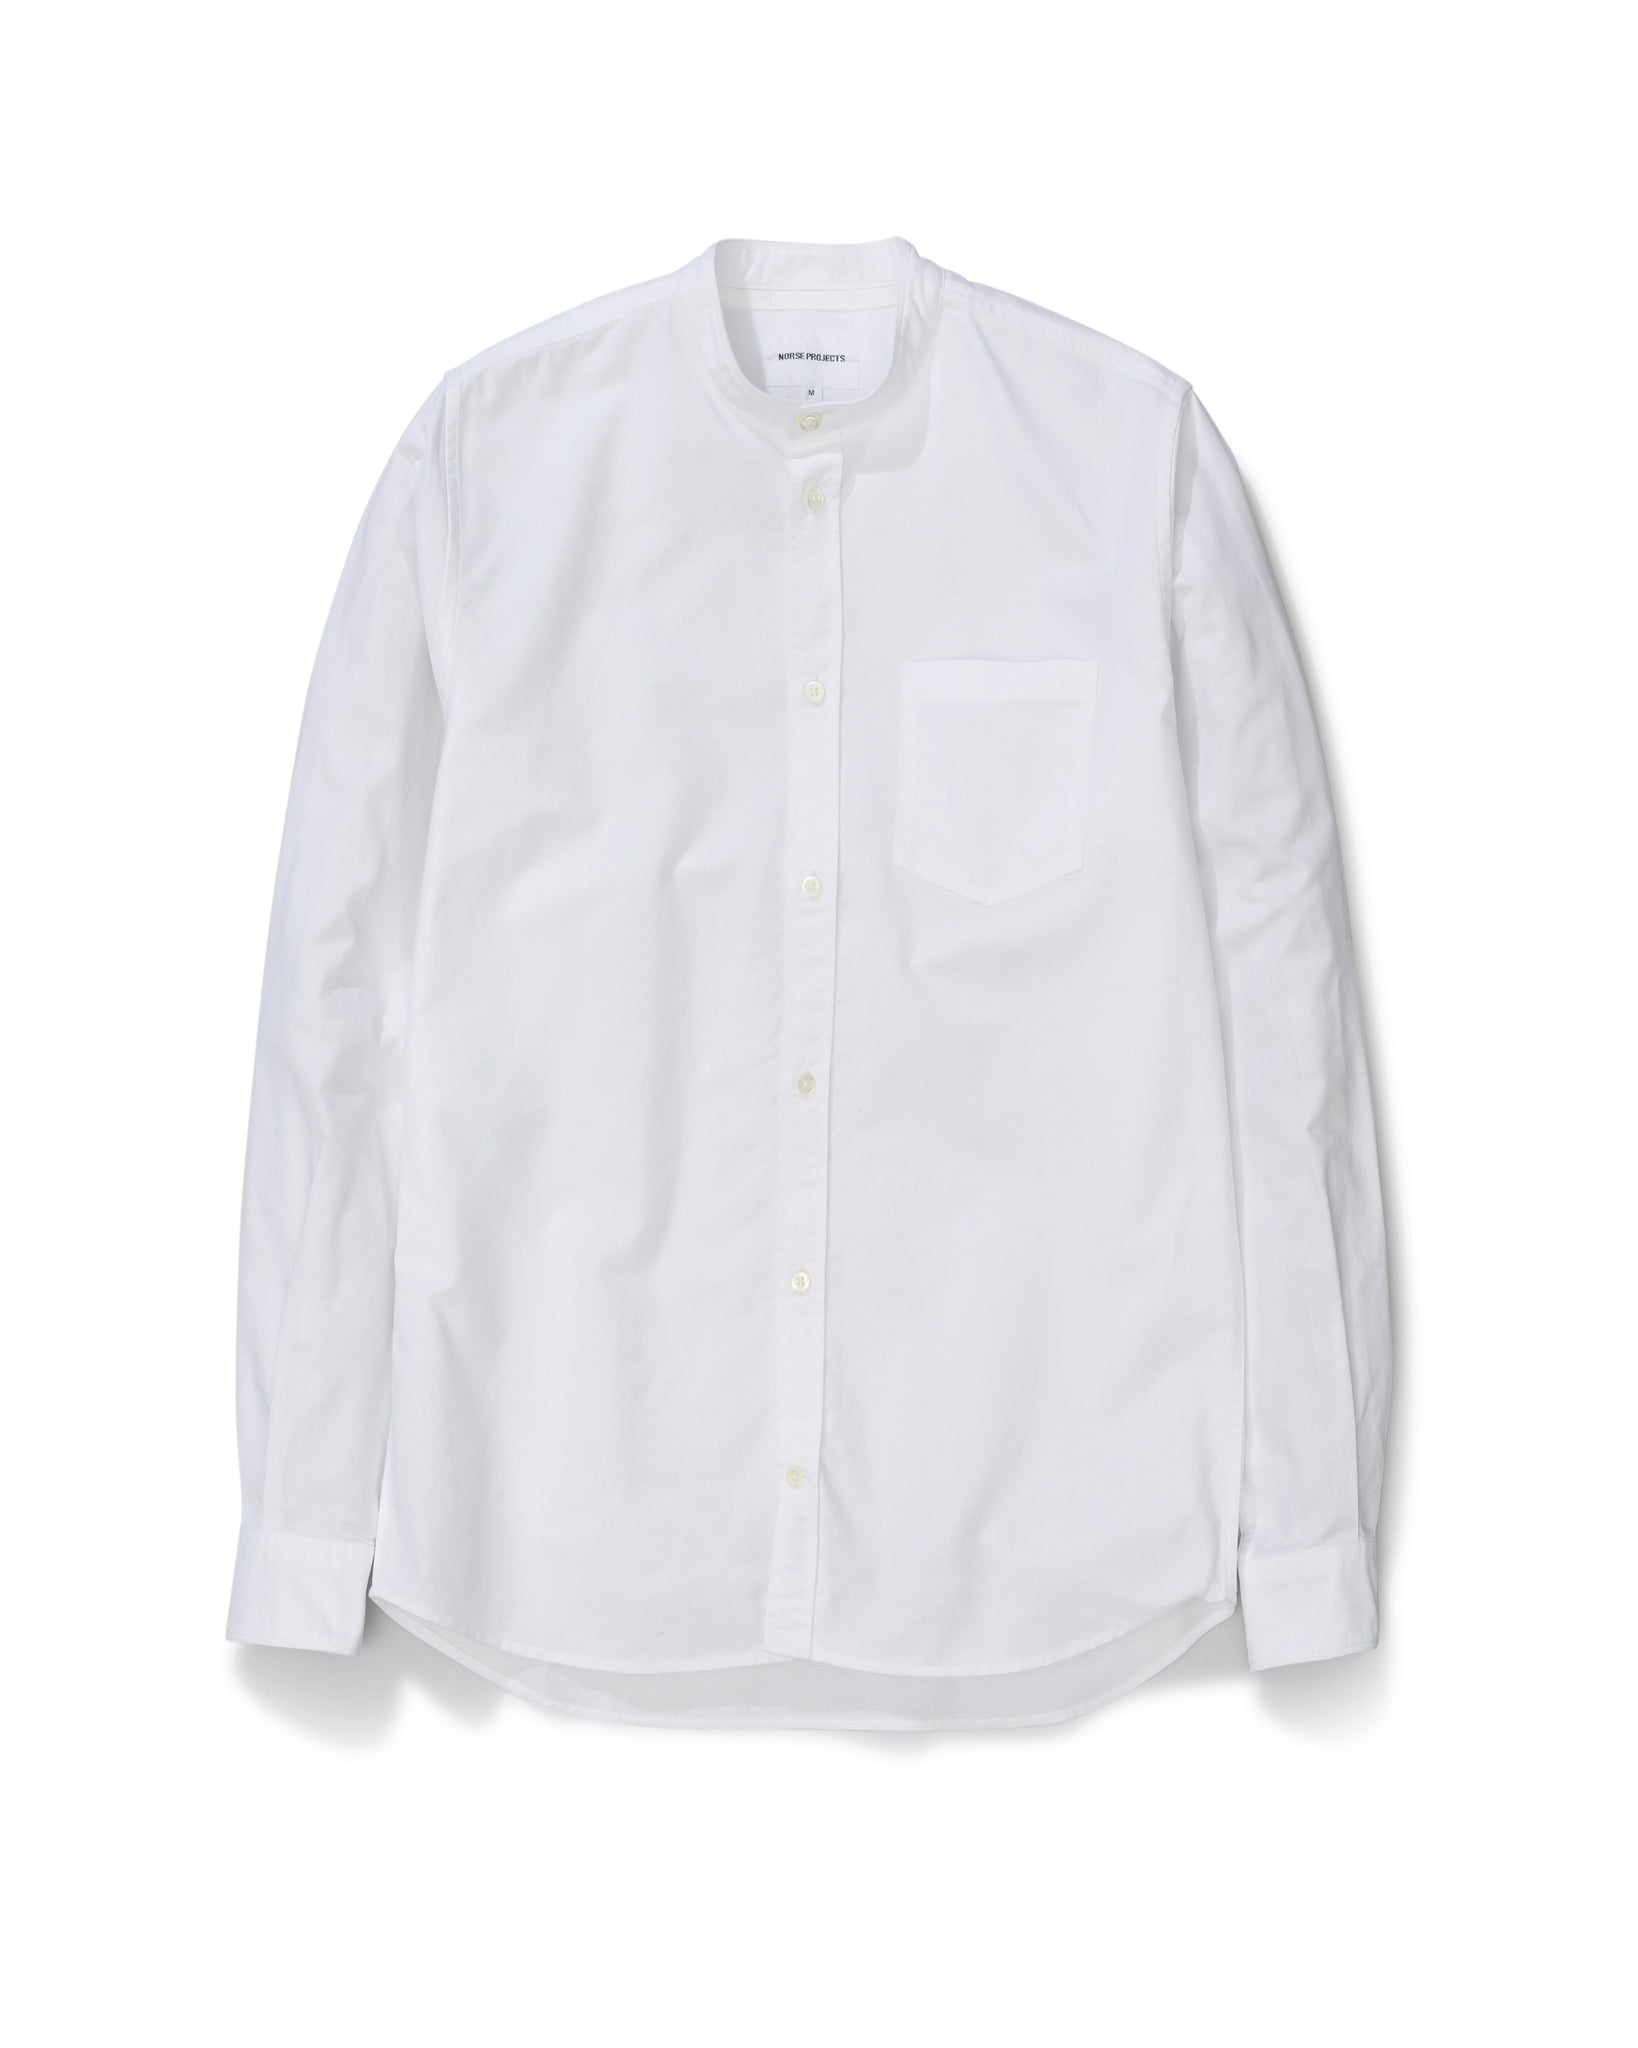 Hans Collarless Oxford